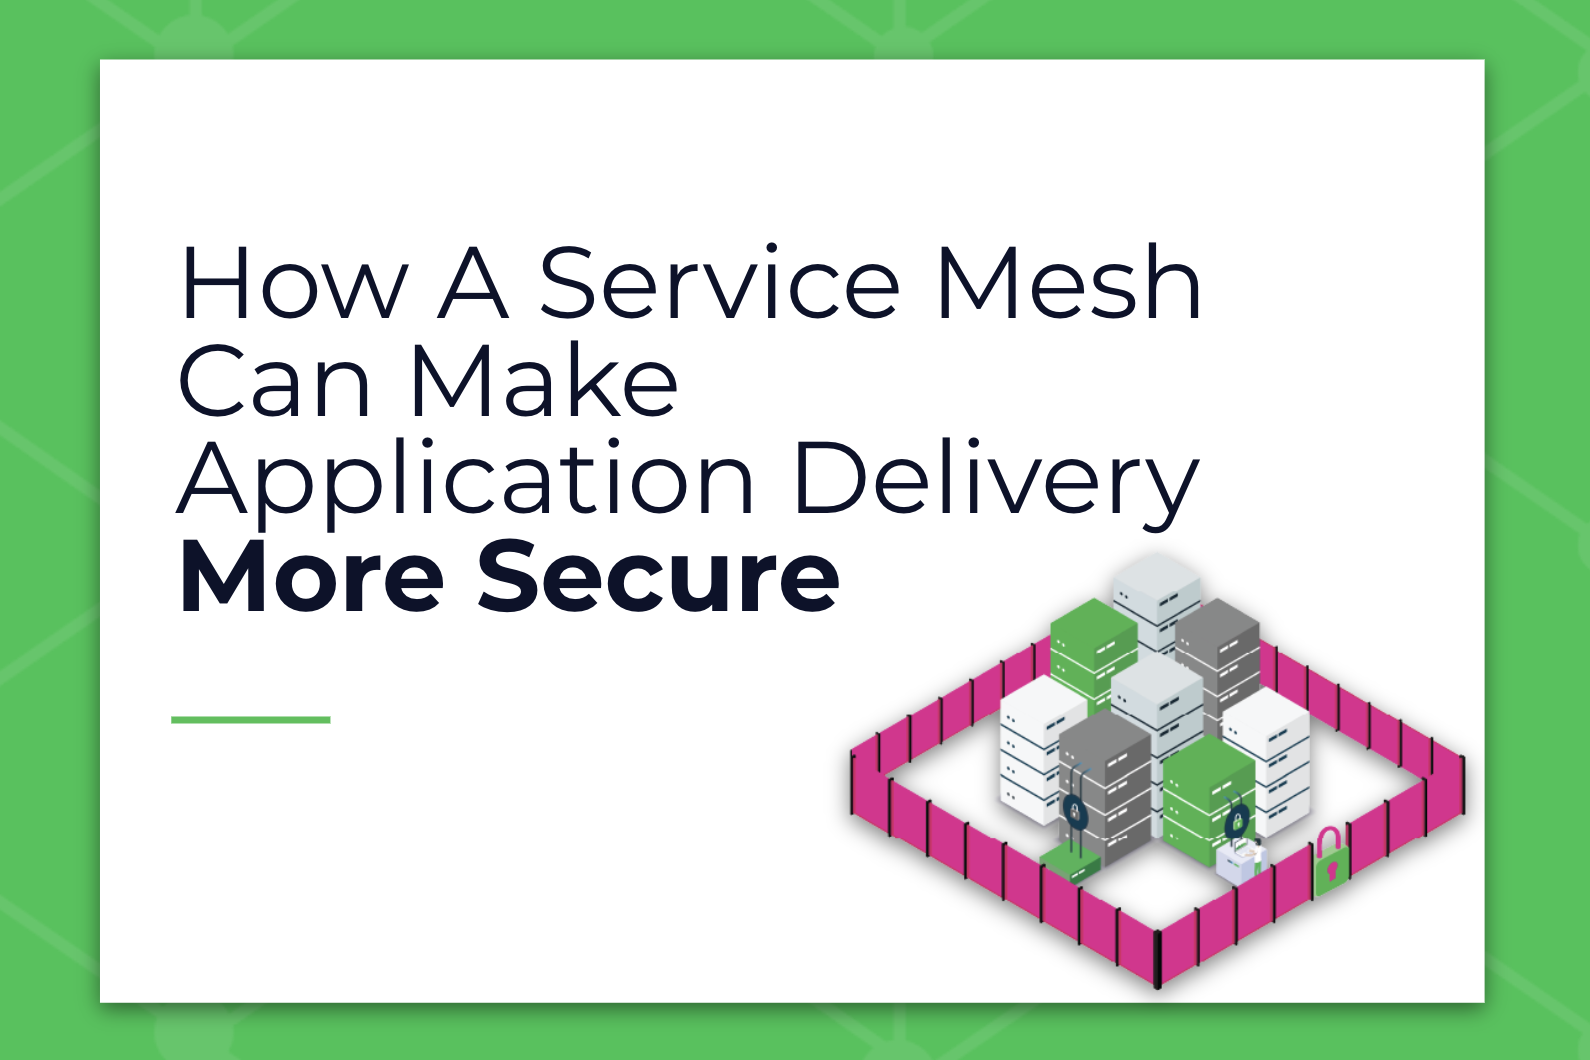 How A Service Mesh Can Make Application Delivery More Secure